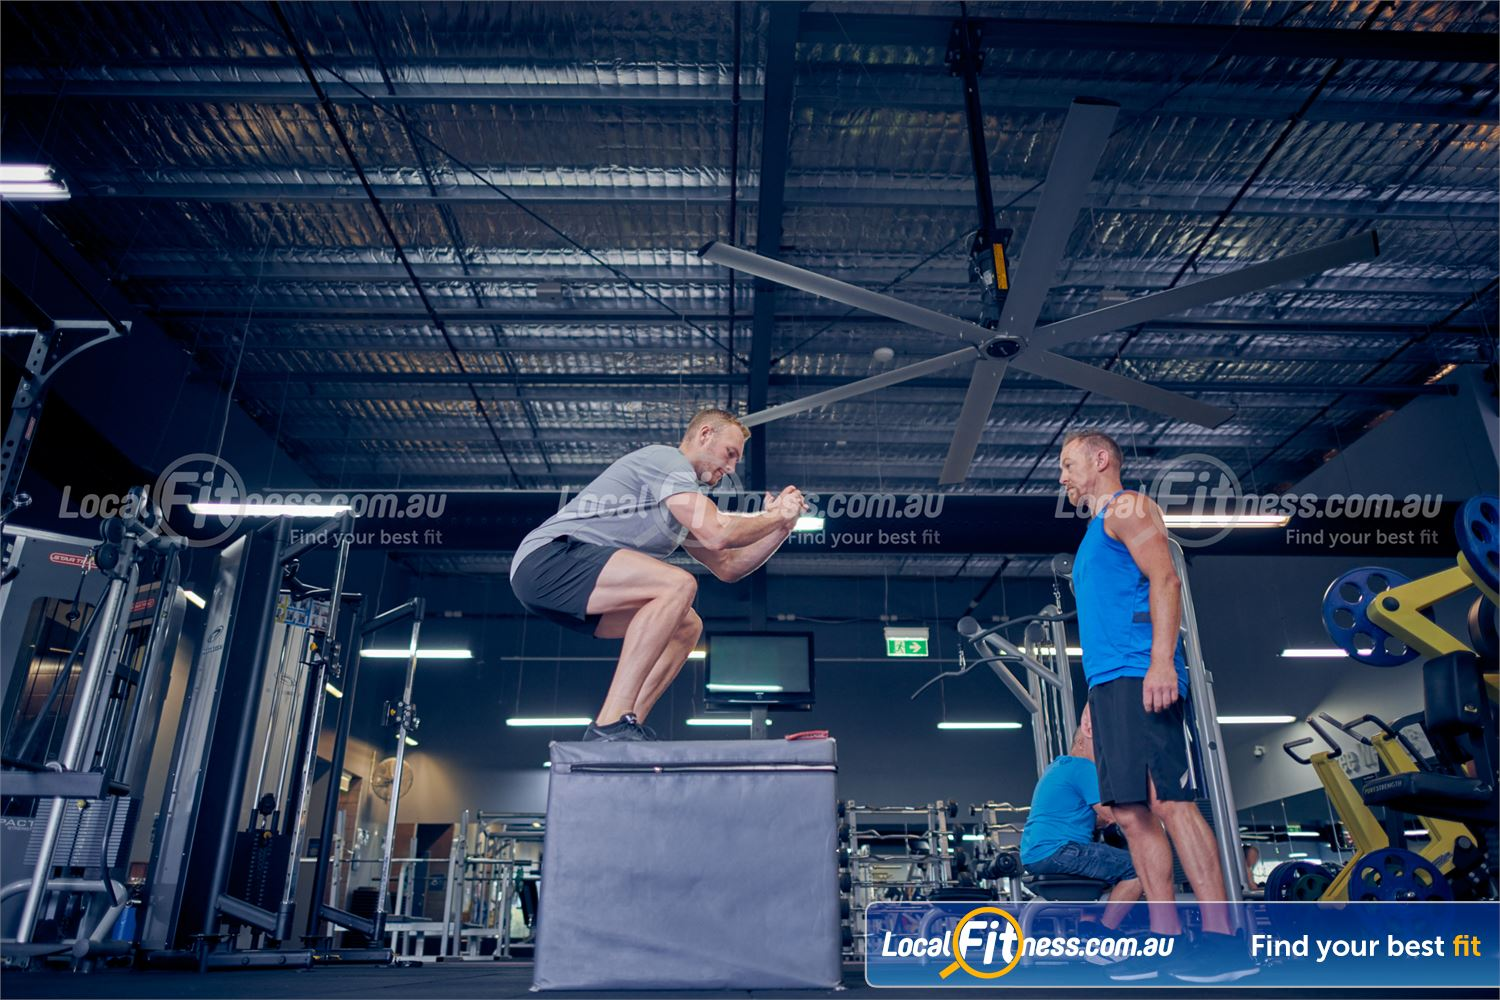 Element Fitness Health Club Near Mitcham Get into functional plyometric training with box jumps.